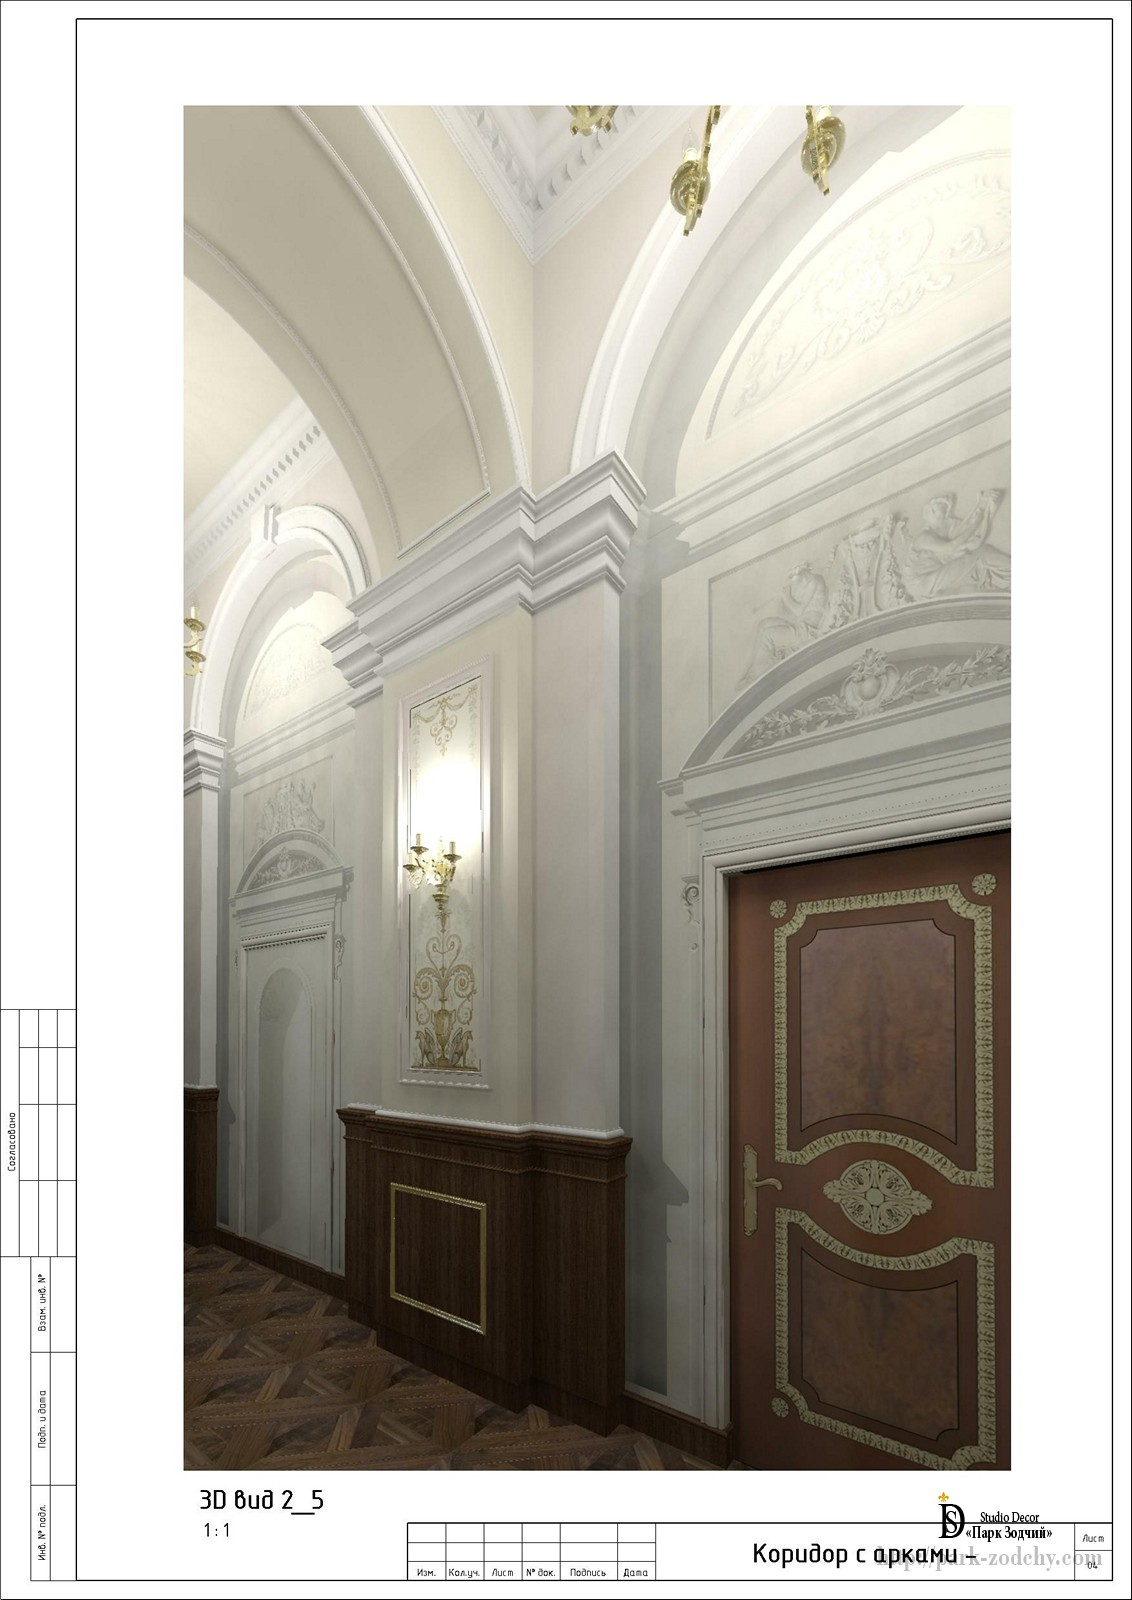 the project of decorative moldings